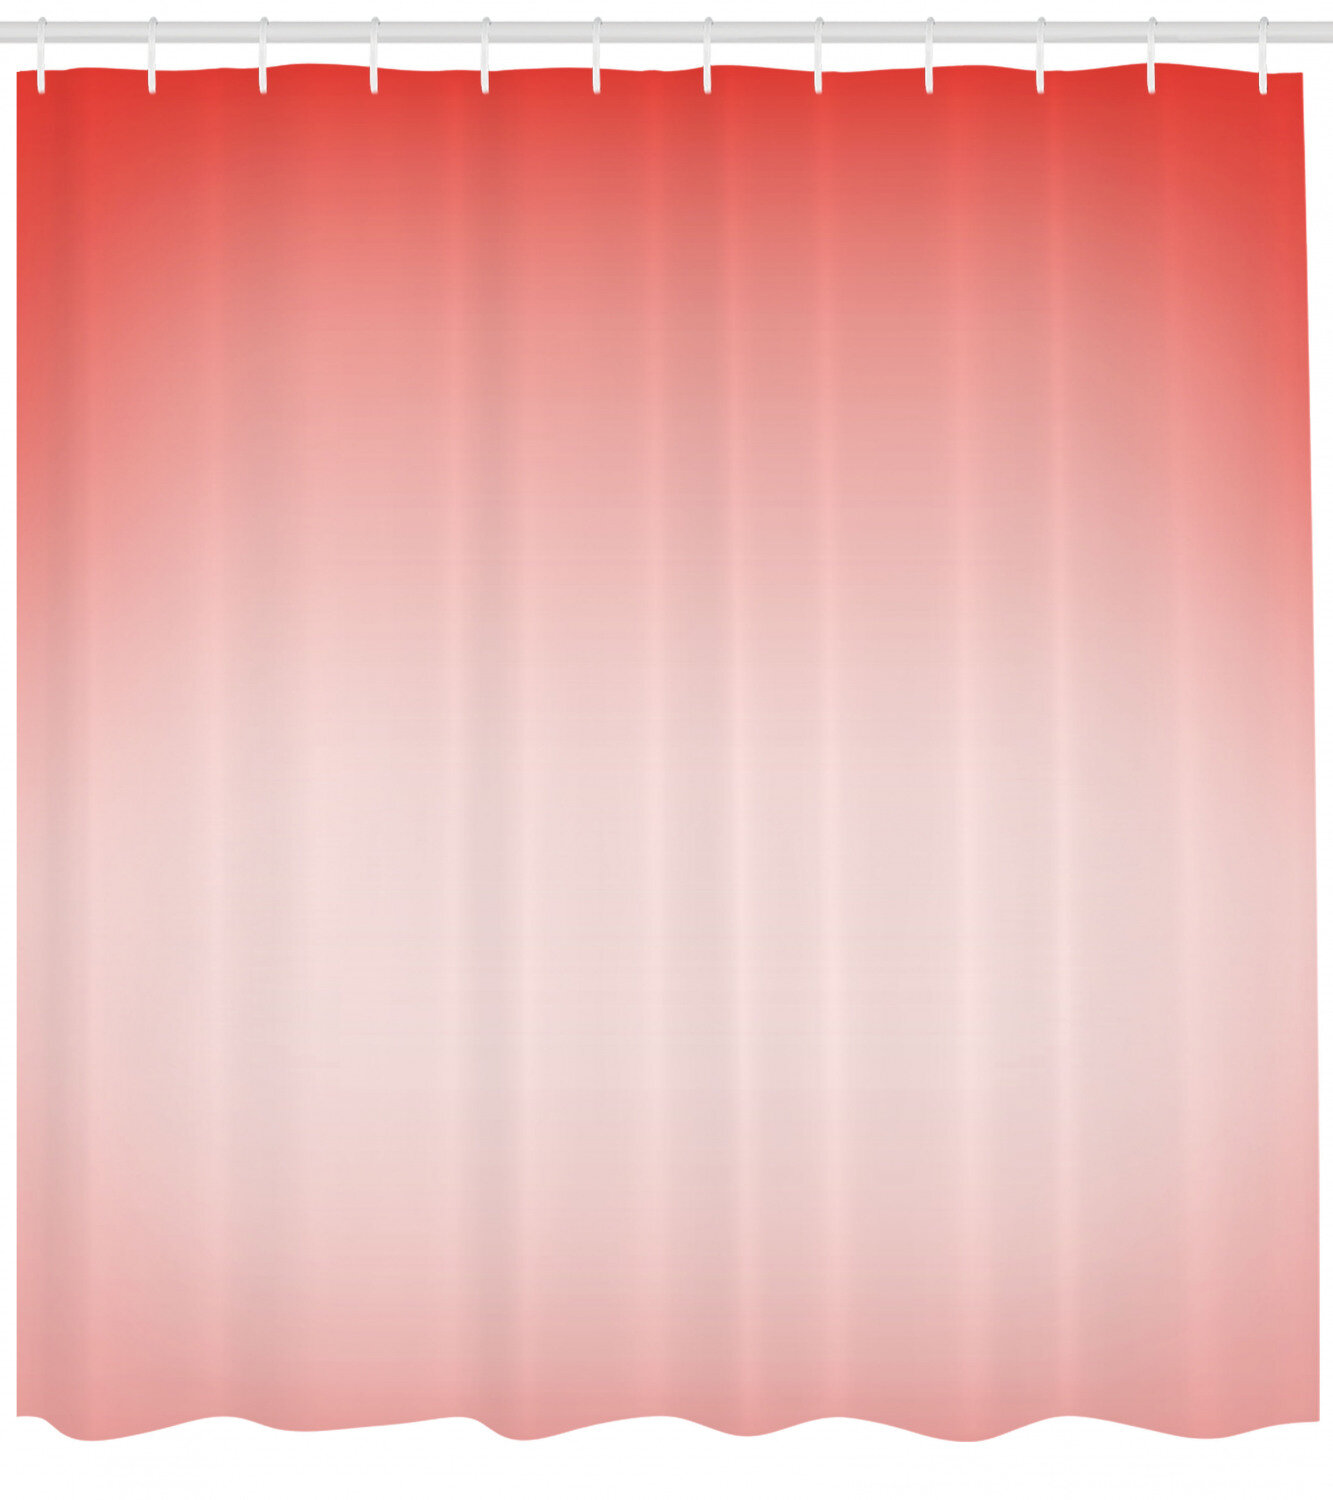 Ambesonne Peach Shower Curtain Abstract Ombre Composition In Feminine Colors With Dreamy Display Art Print Cloth Fabric Bathroom Decor Set With